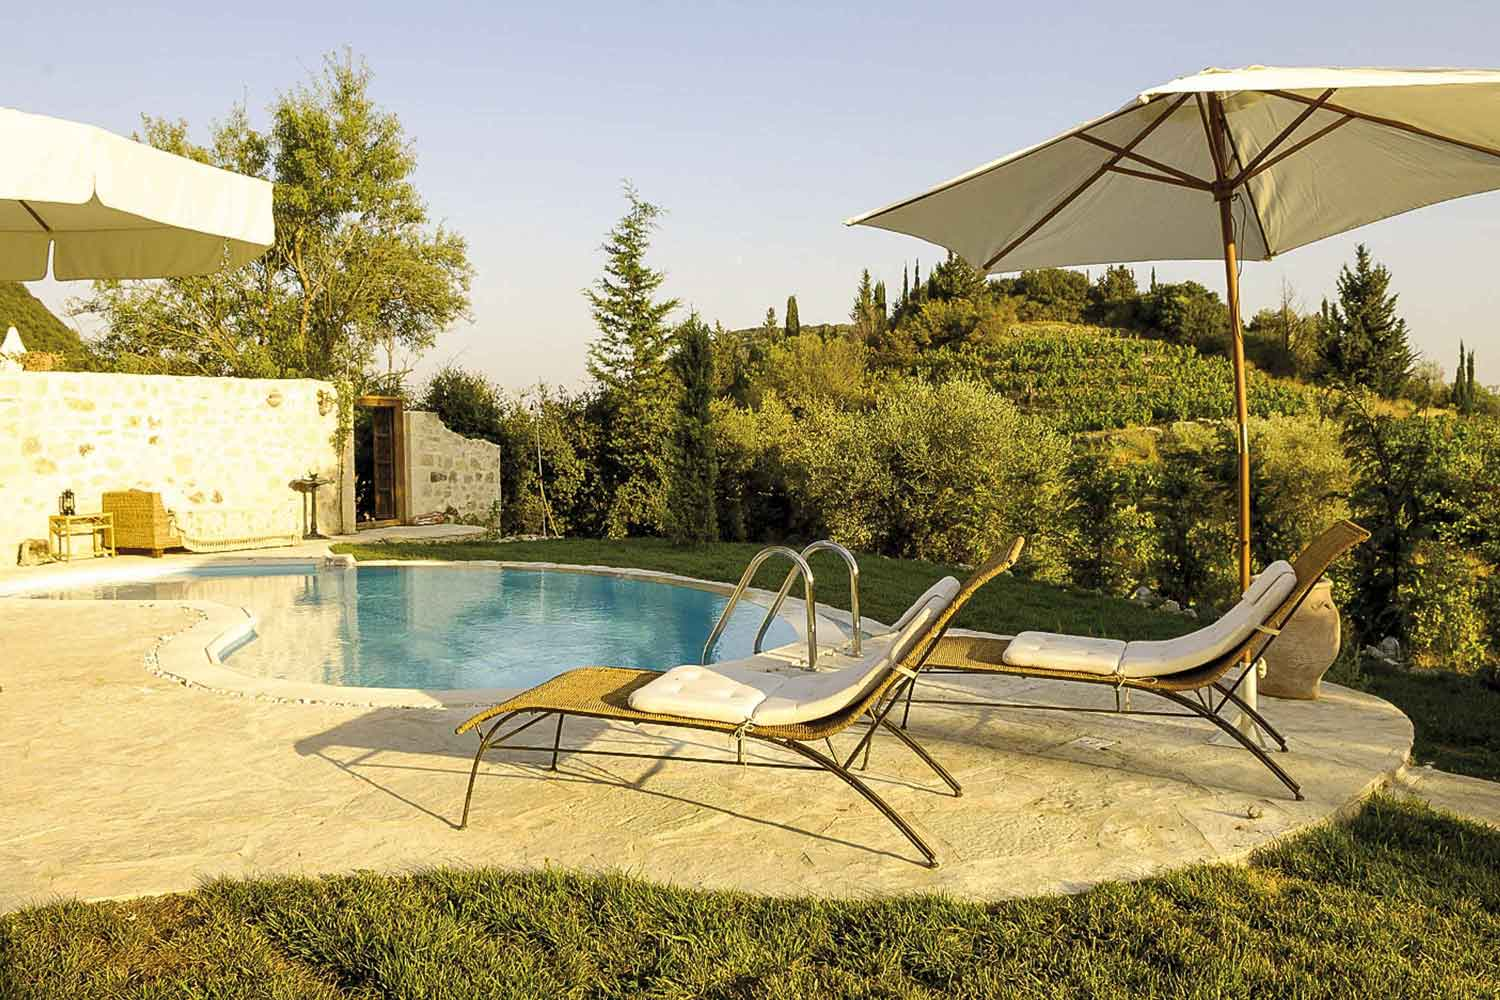 private pool villa at Greek island, perfect surrounding landscape